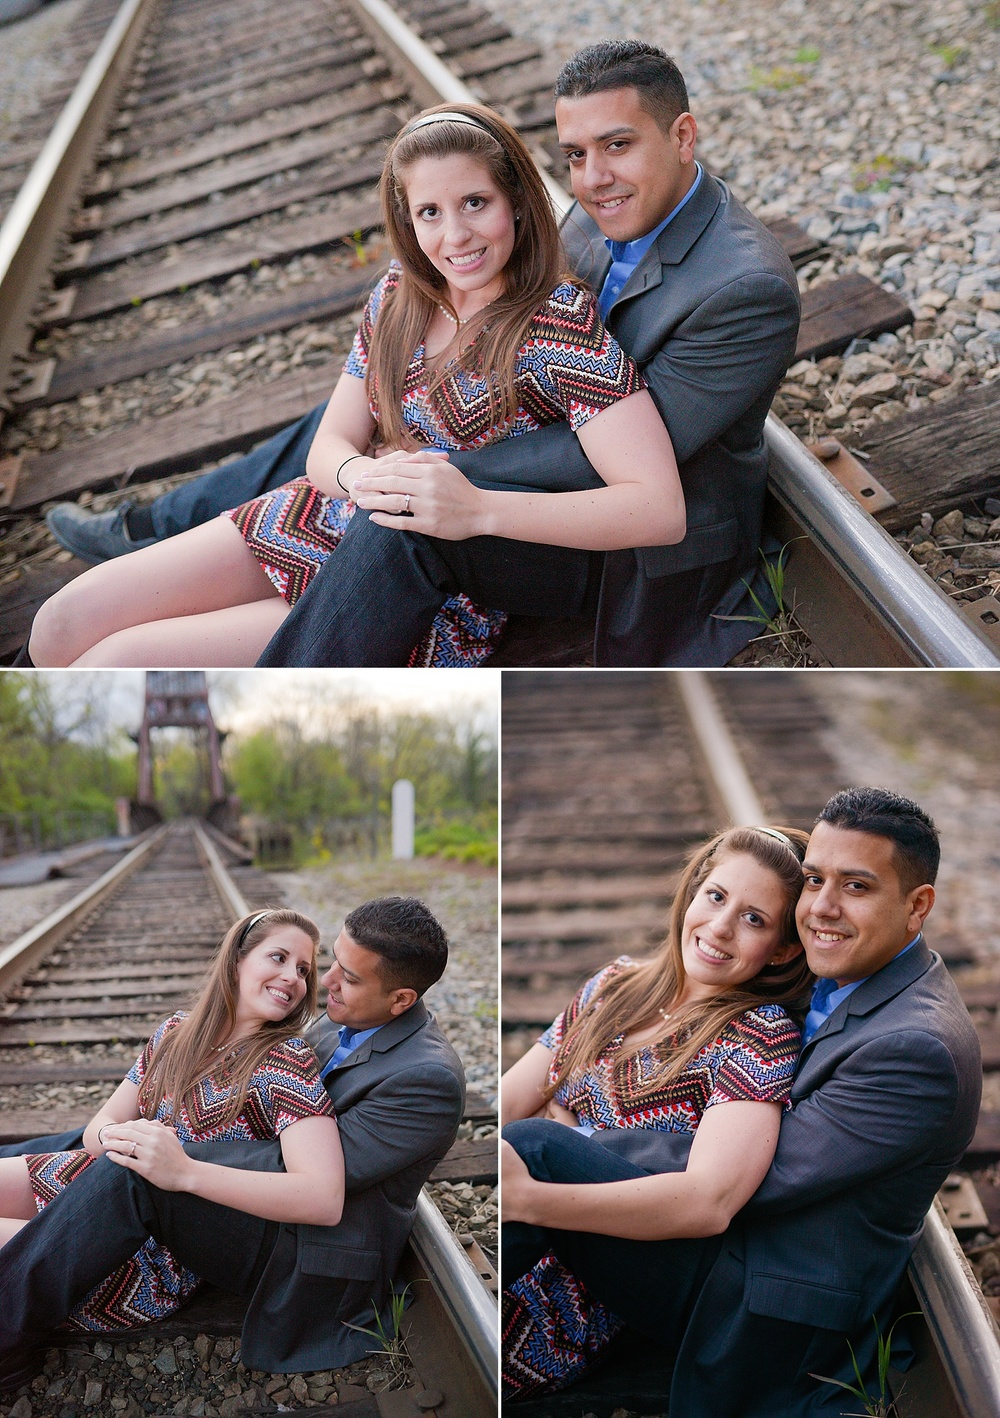 belle-isle-engagement-session-rva-richmond_0016.jpg